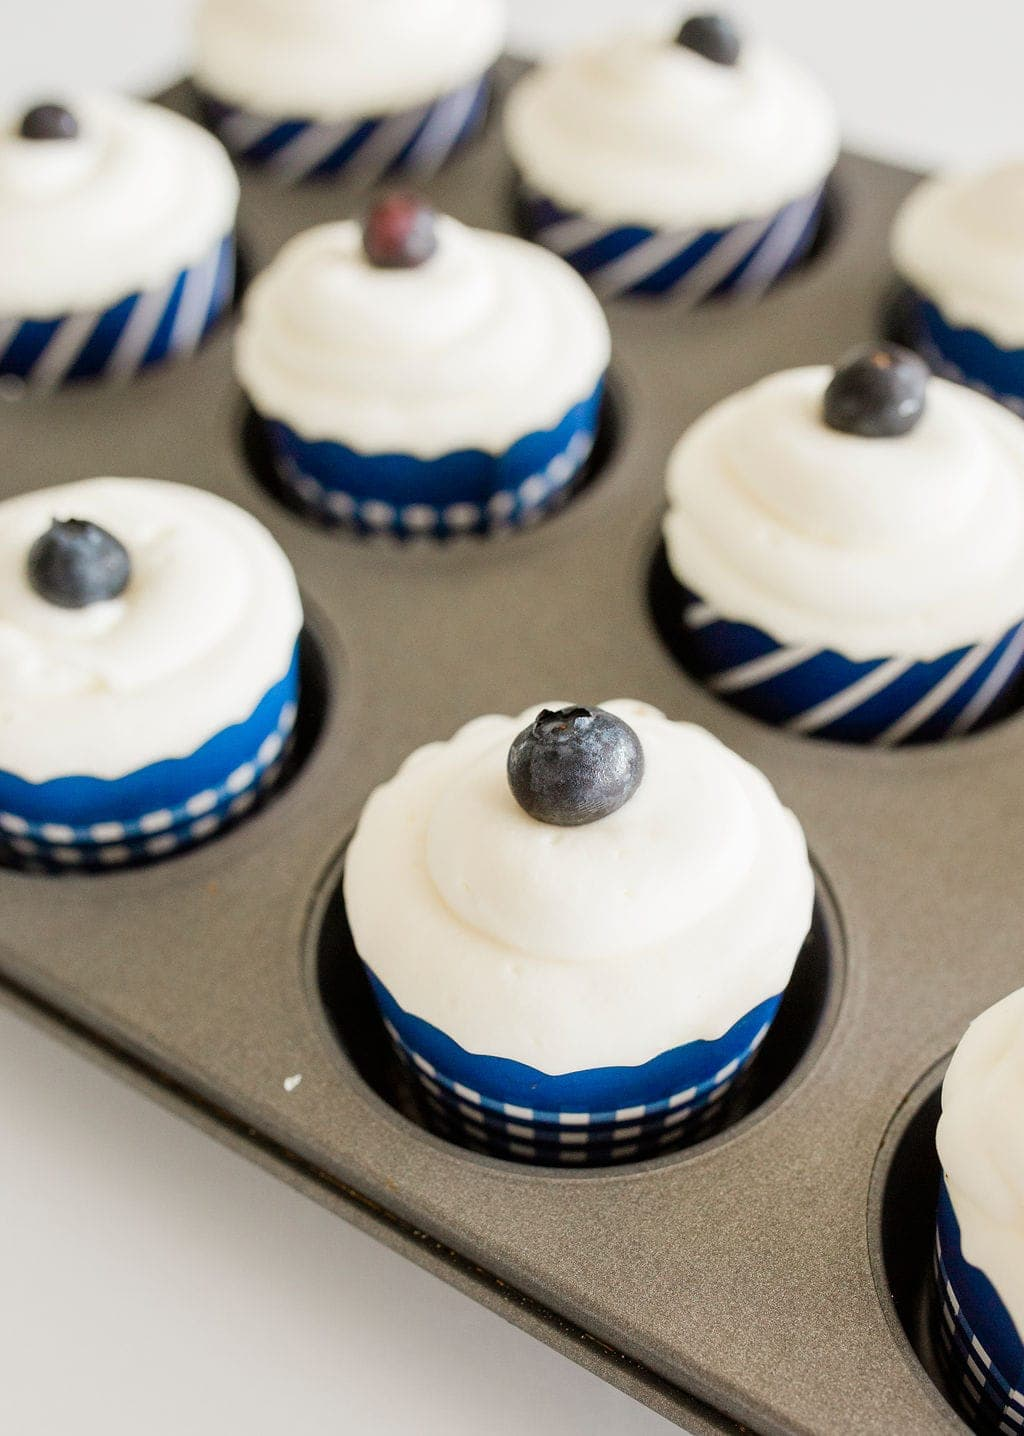 blueberries on cupcakes